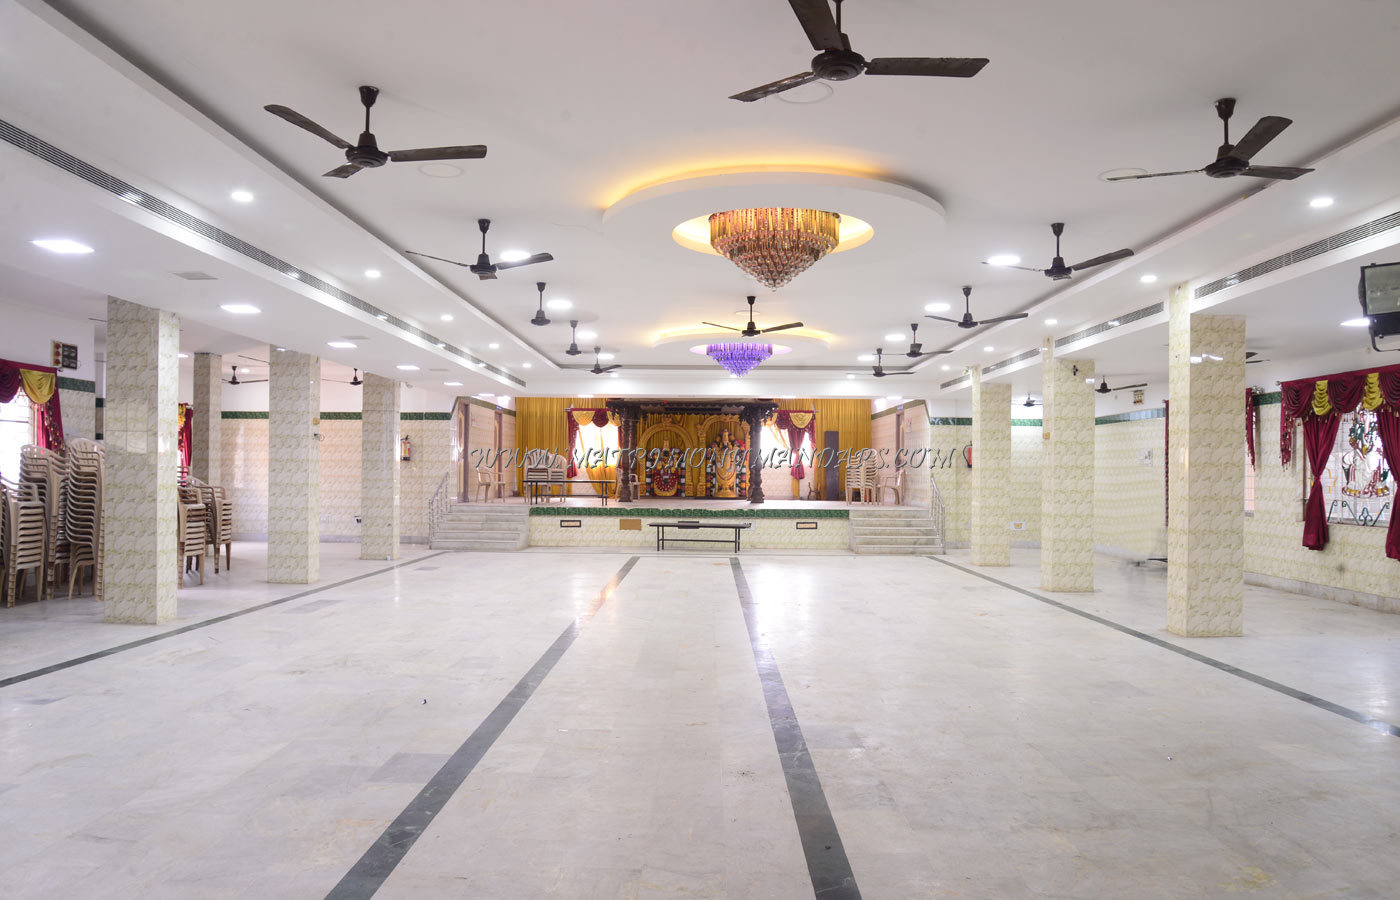 Find the availability of the Krishna Thirumana Mandapam (A/C) in Maduravoyal, Chennai and avail special offers